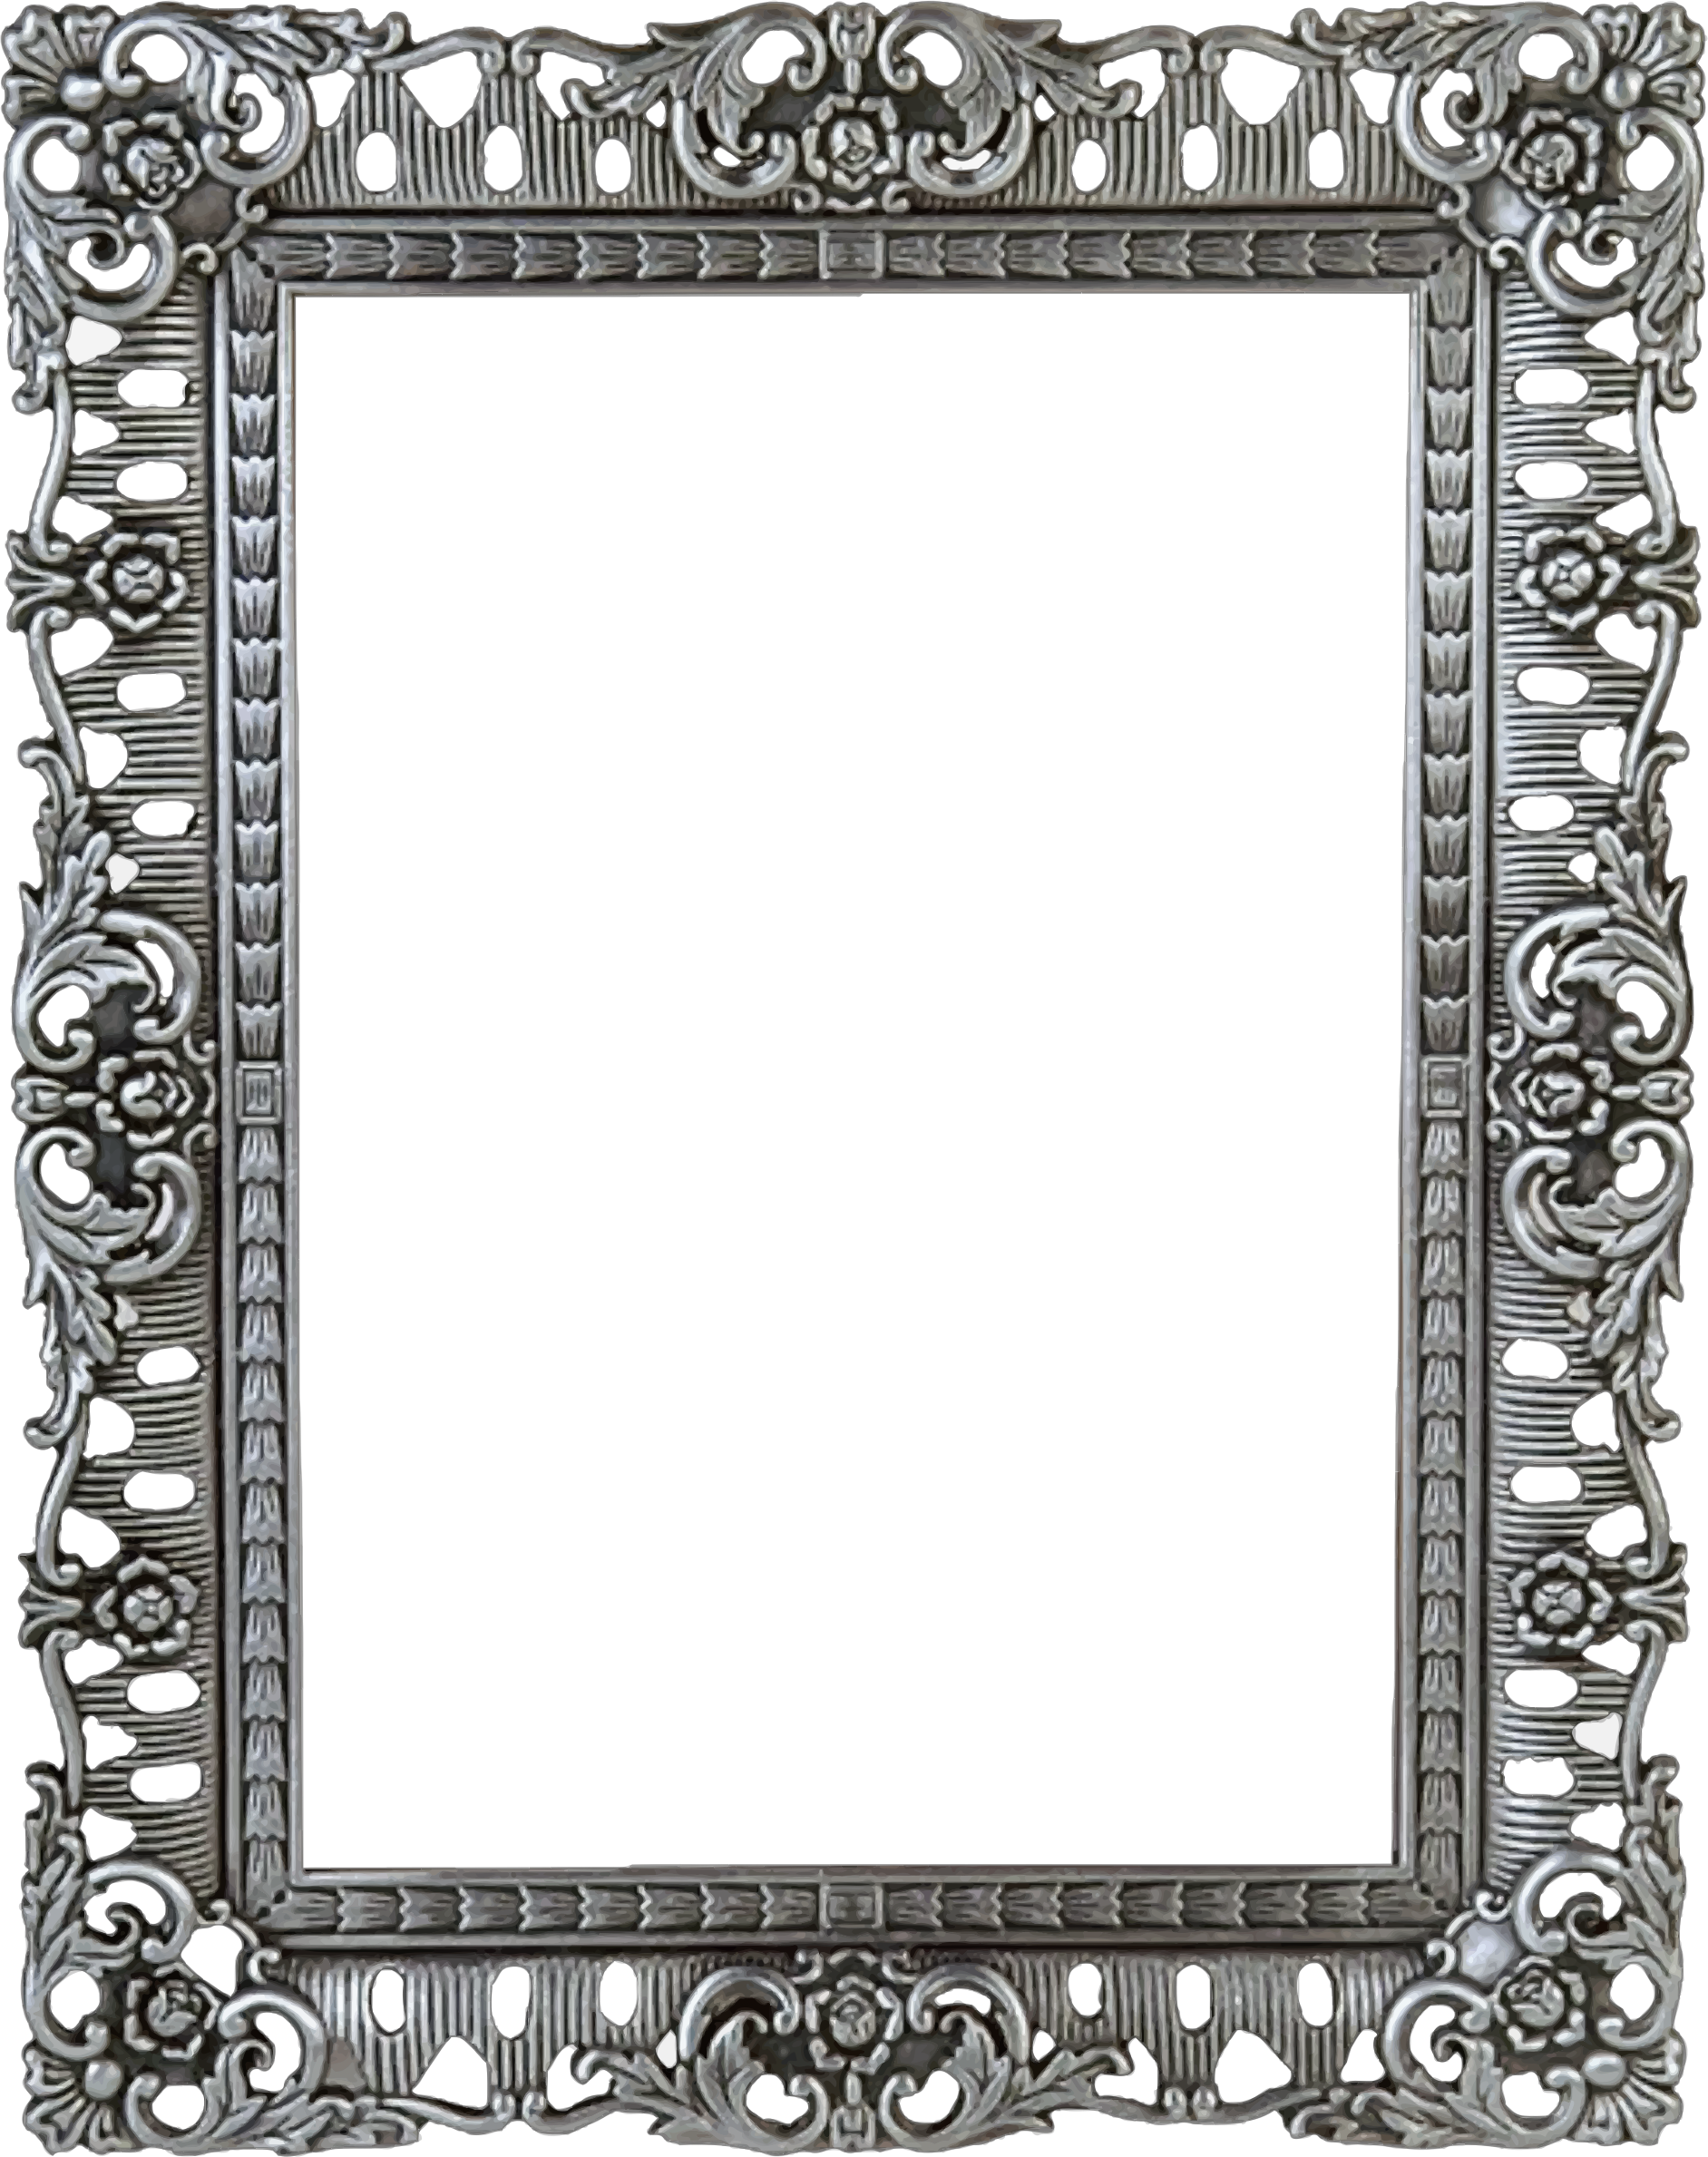 Black Ornate Frame Png. Ornate Frame Border Clipart Black Png A ...